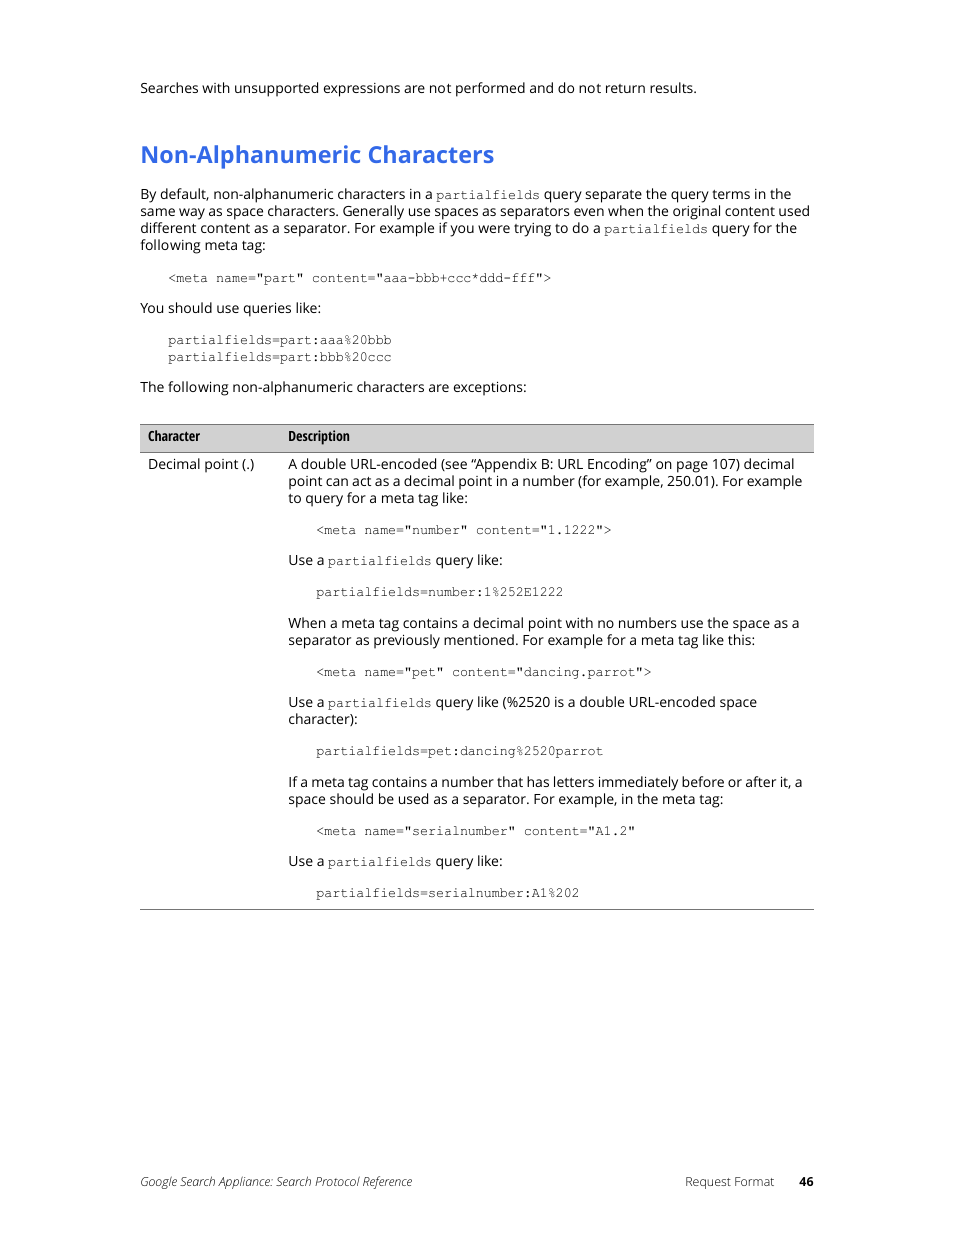 Non-alphanumeric characters | Google Search Appliance Protocol Reference User  Manual | Page 46 /